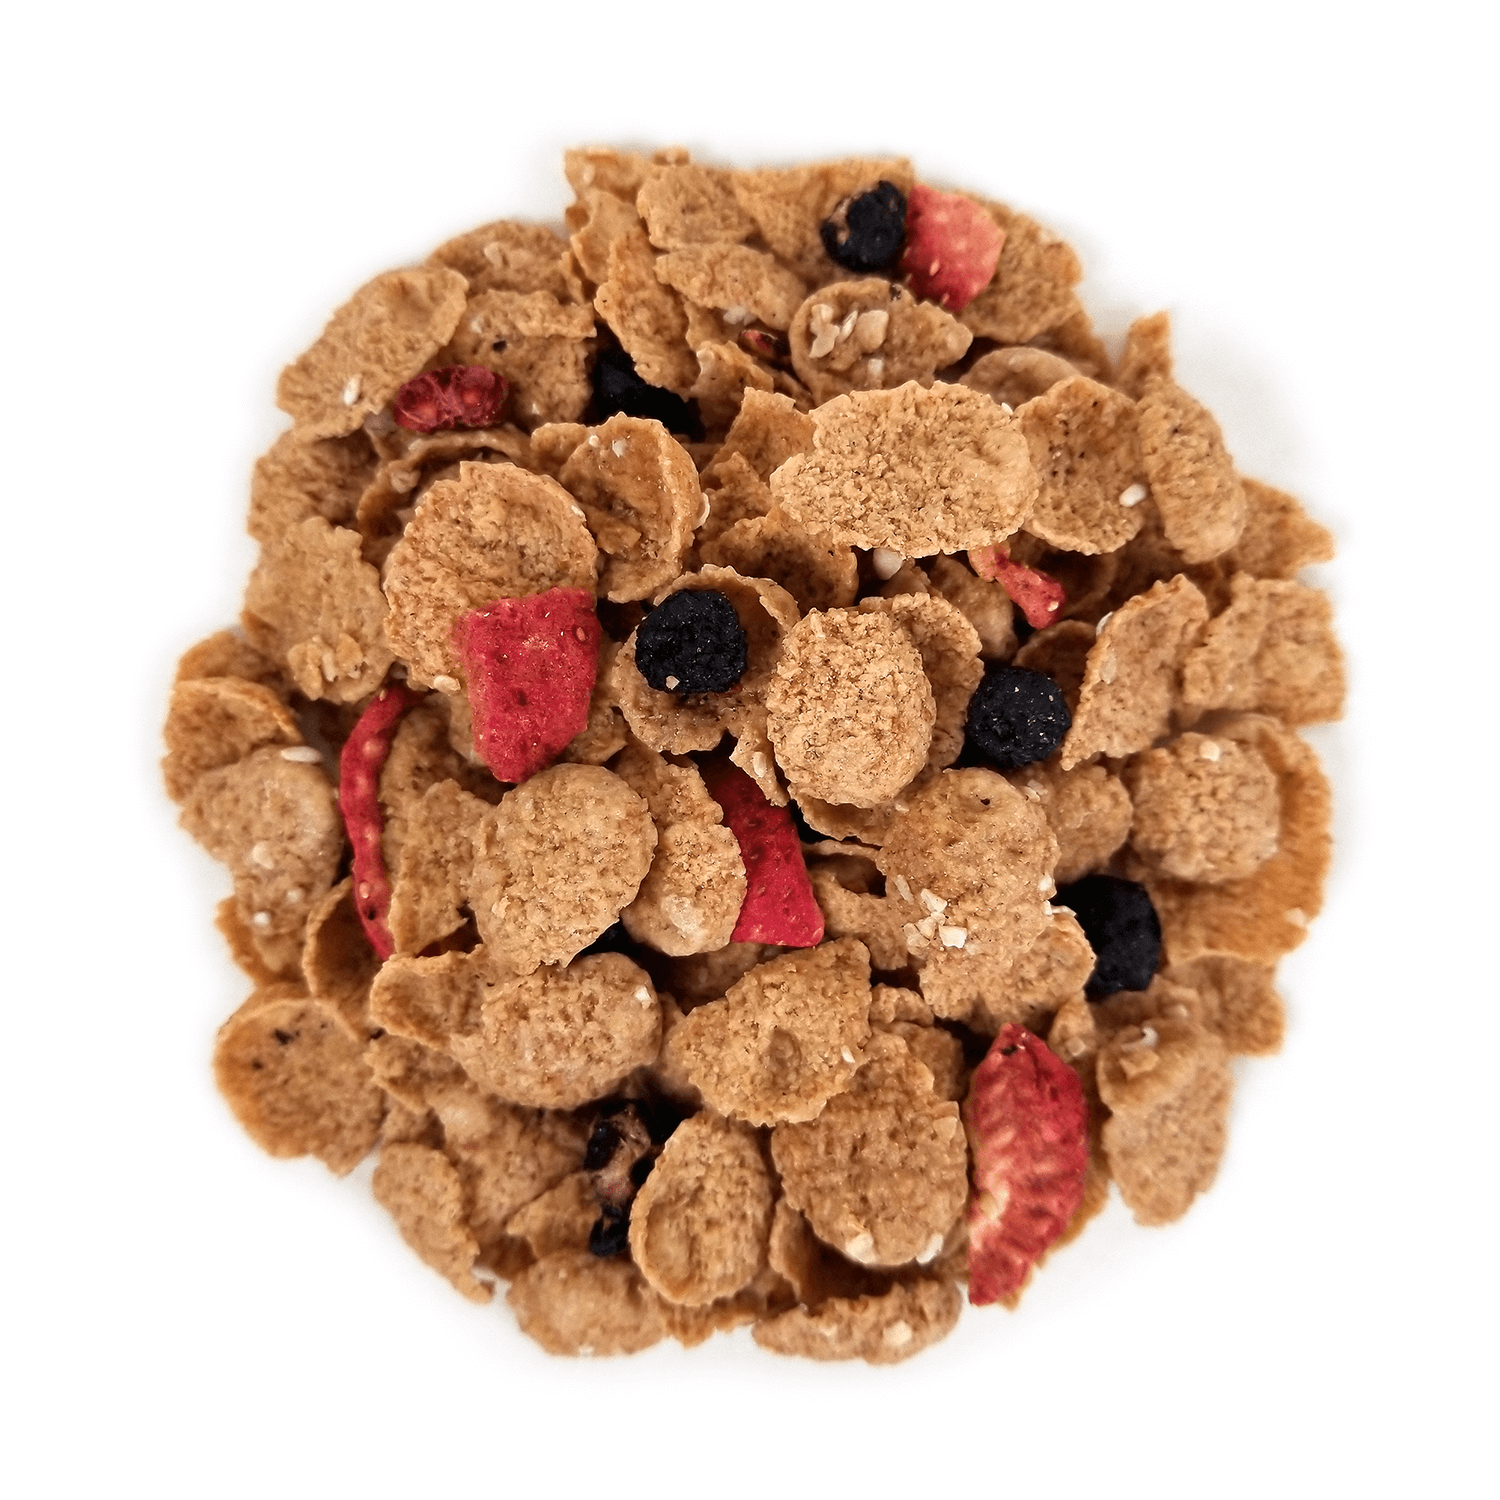 Berry Oatmeal Cereal